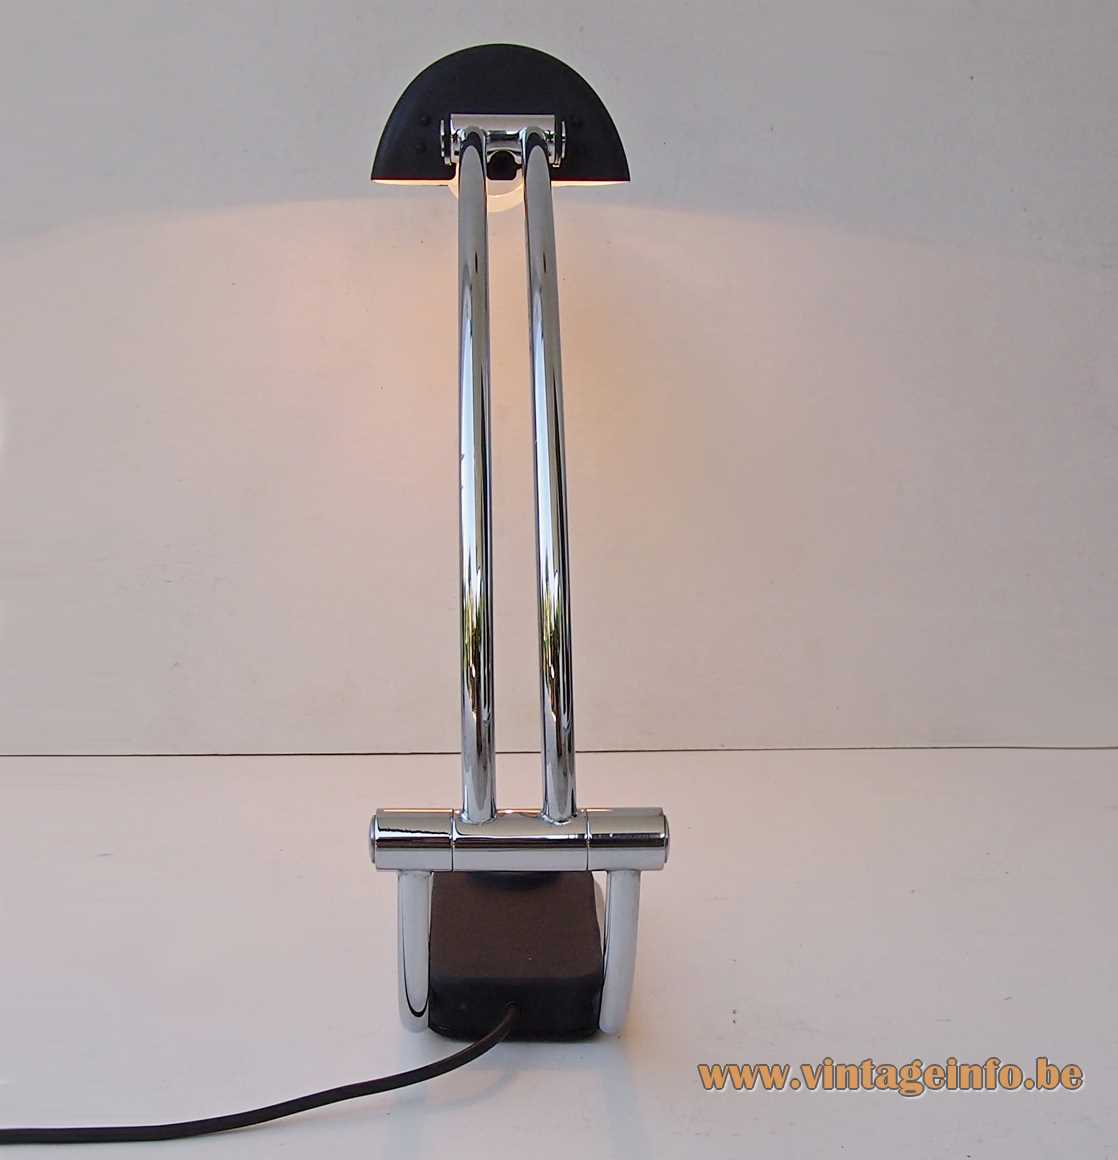 Hillebrand desk lamp 7619 black base & adjustable lampshade curved chrome rod 1970s Germany large switch